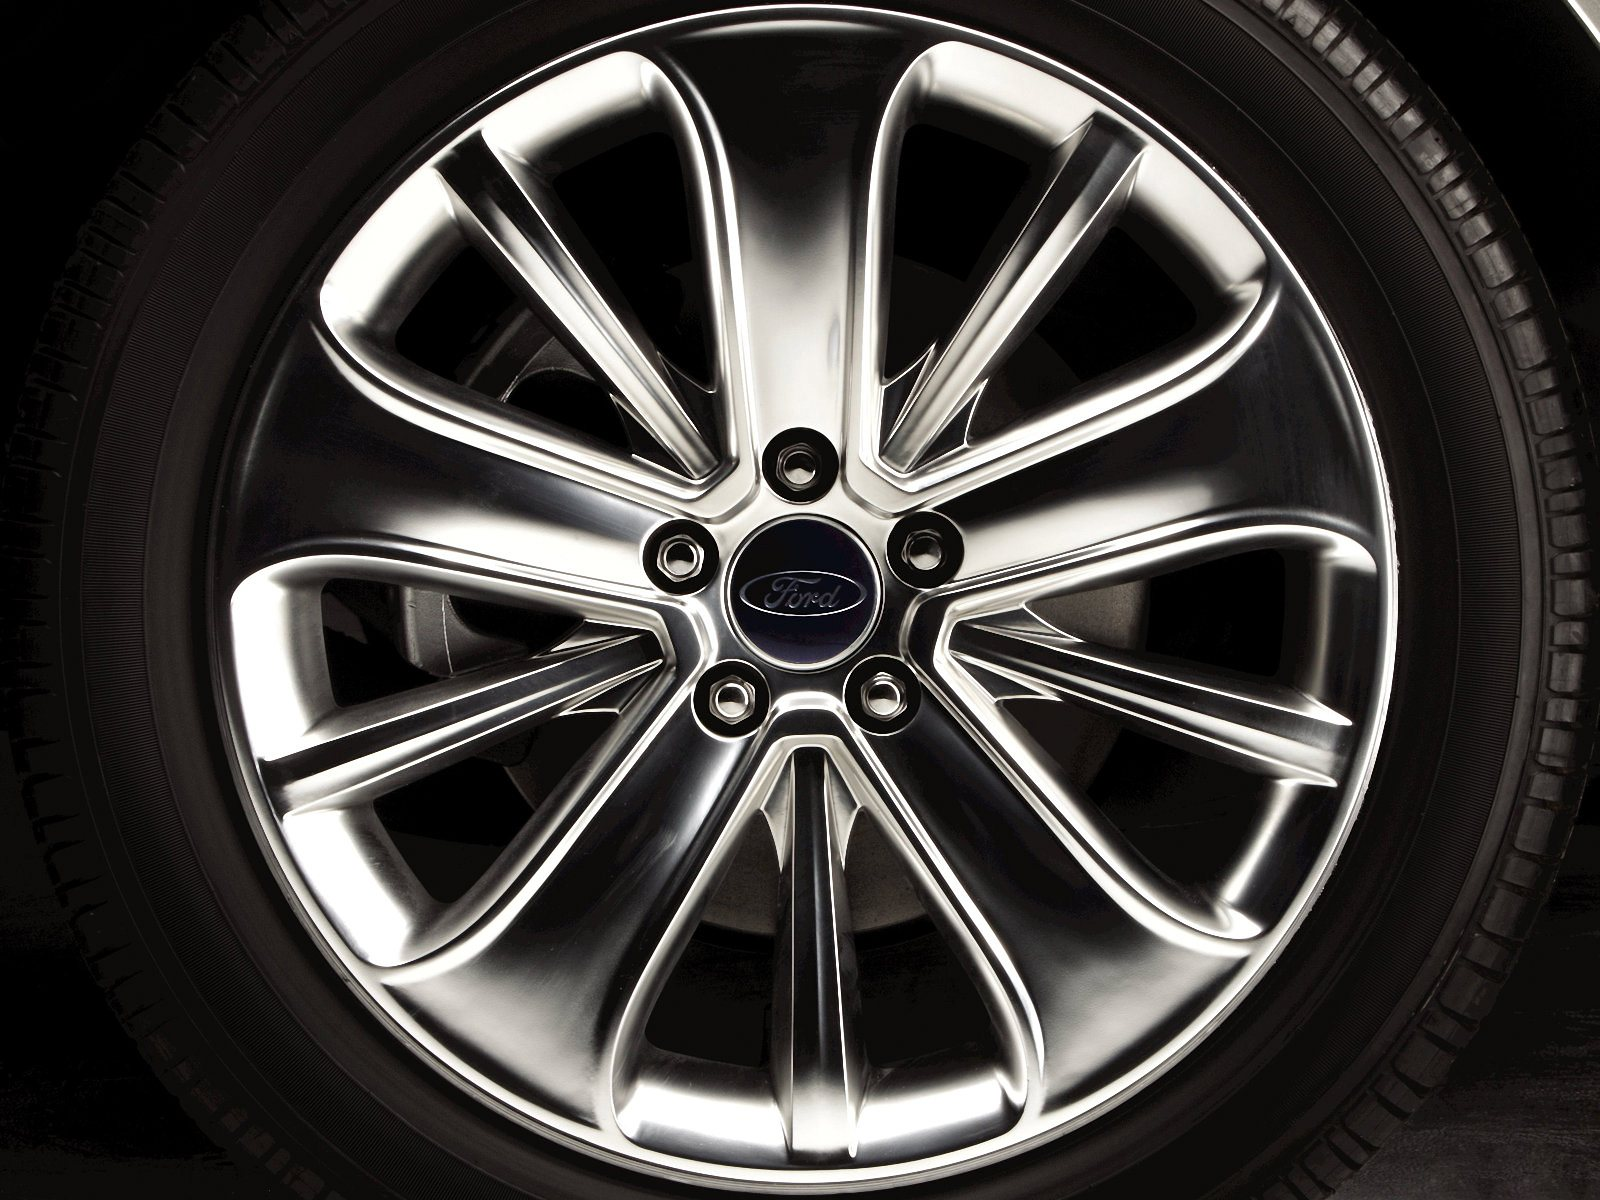 Ford Taurus wheels #4